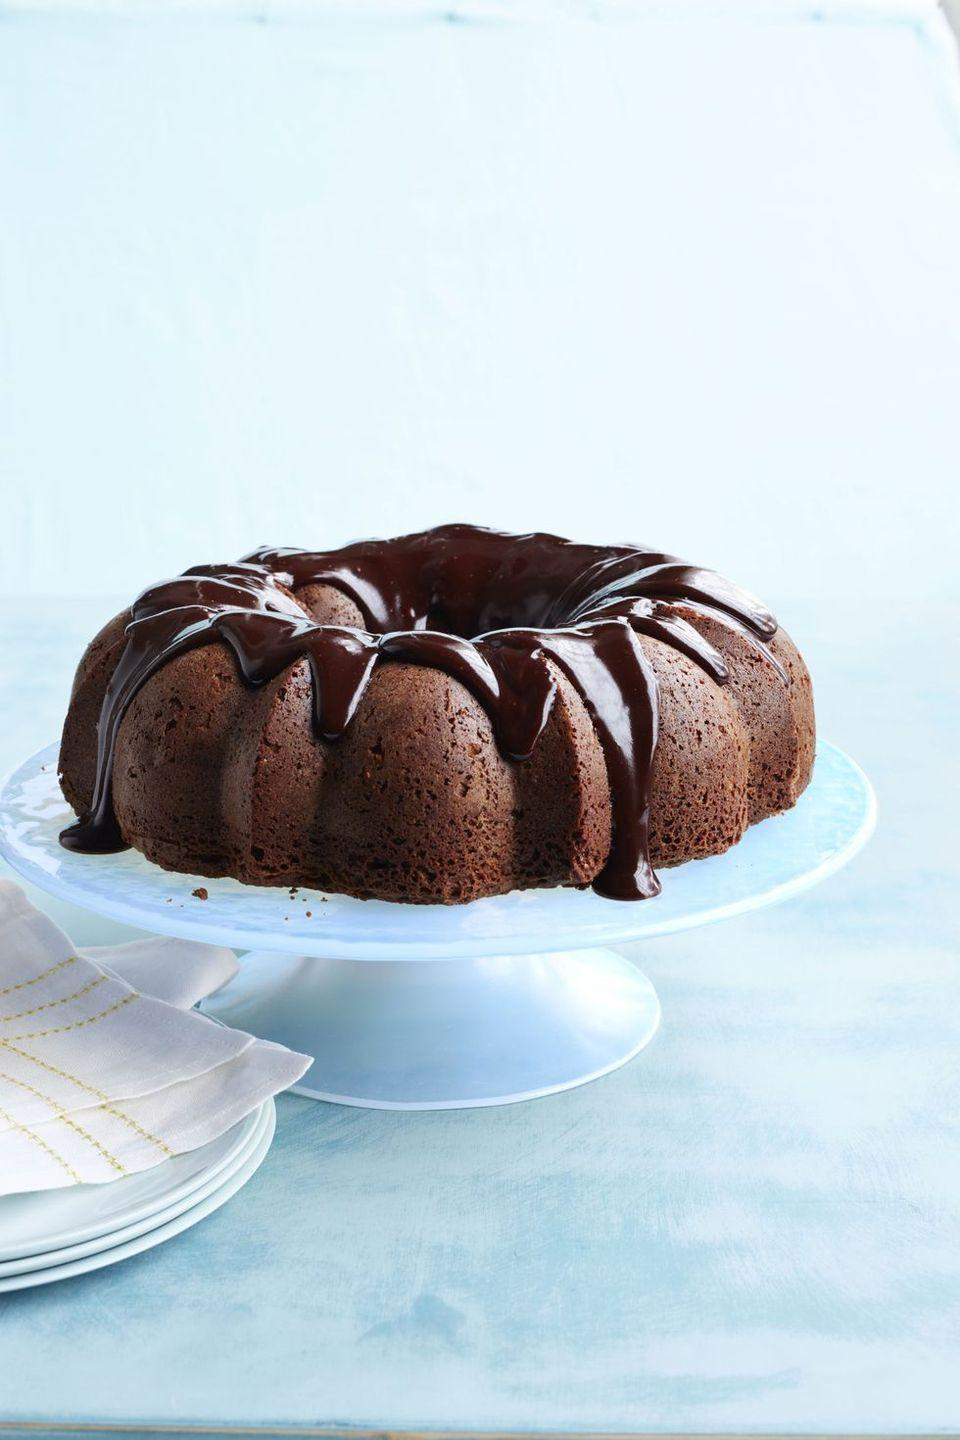 """<p>If Dad loves chocolate, this is the cake for him. Rolled oats and semisweet chocolate come together to a create a tender and delicious cake that's also gluten-free.</p><p><strong><em><a href=""""https://www.womansday.com/food-recipes/food-drinks/recipes/a50262/oatmeal-brownie-bundt-cake-recipe-wdy0515/"""" rel=""""nofollow noopener"""" target=""""_blank"""" data-ylk=""""slk:Get the Oatmeal-Brownie Bundt Cake recipe."""" class=""""link rapid-noclick-resp"""">Get the Oatmeal-Brownie Bundt Cake recipe. </a></em></strong></p>"""